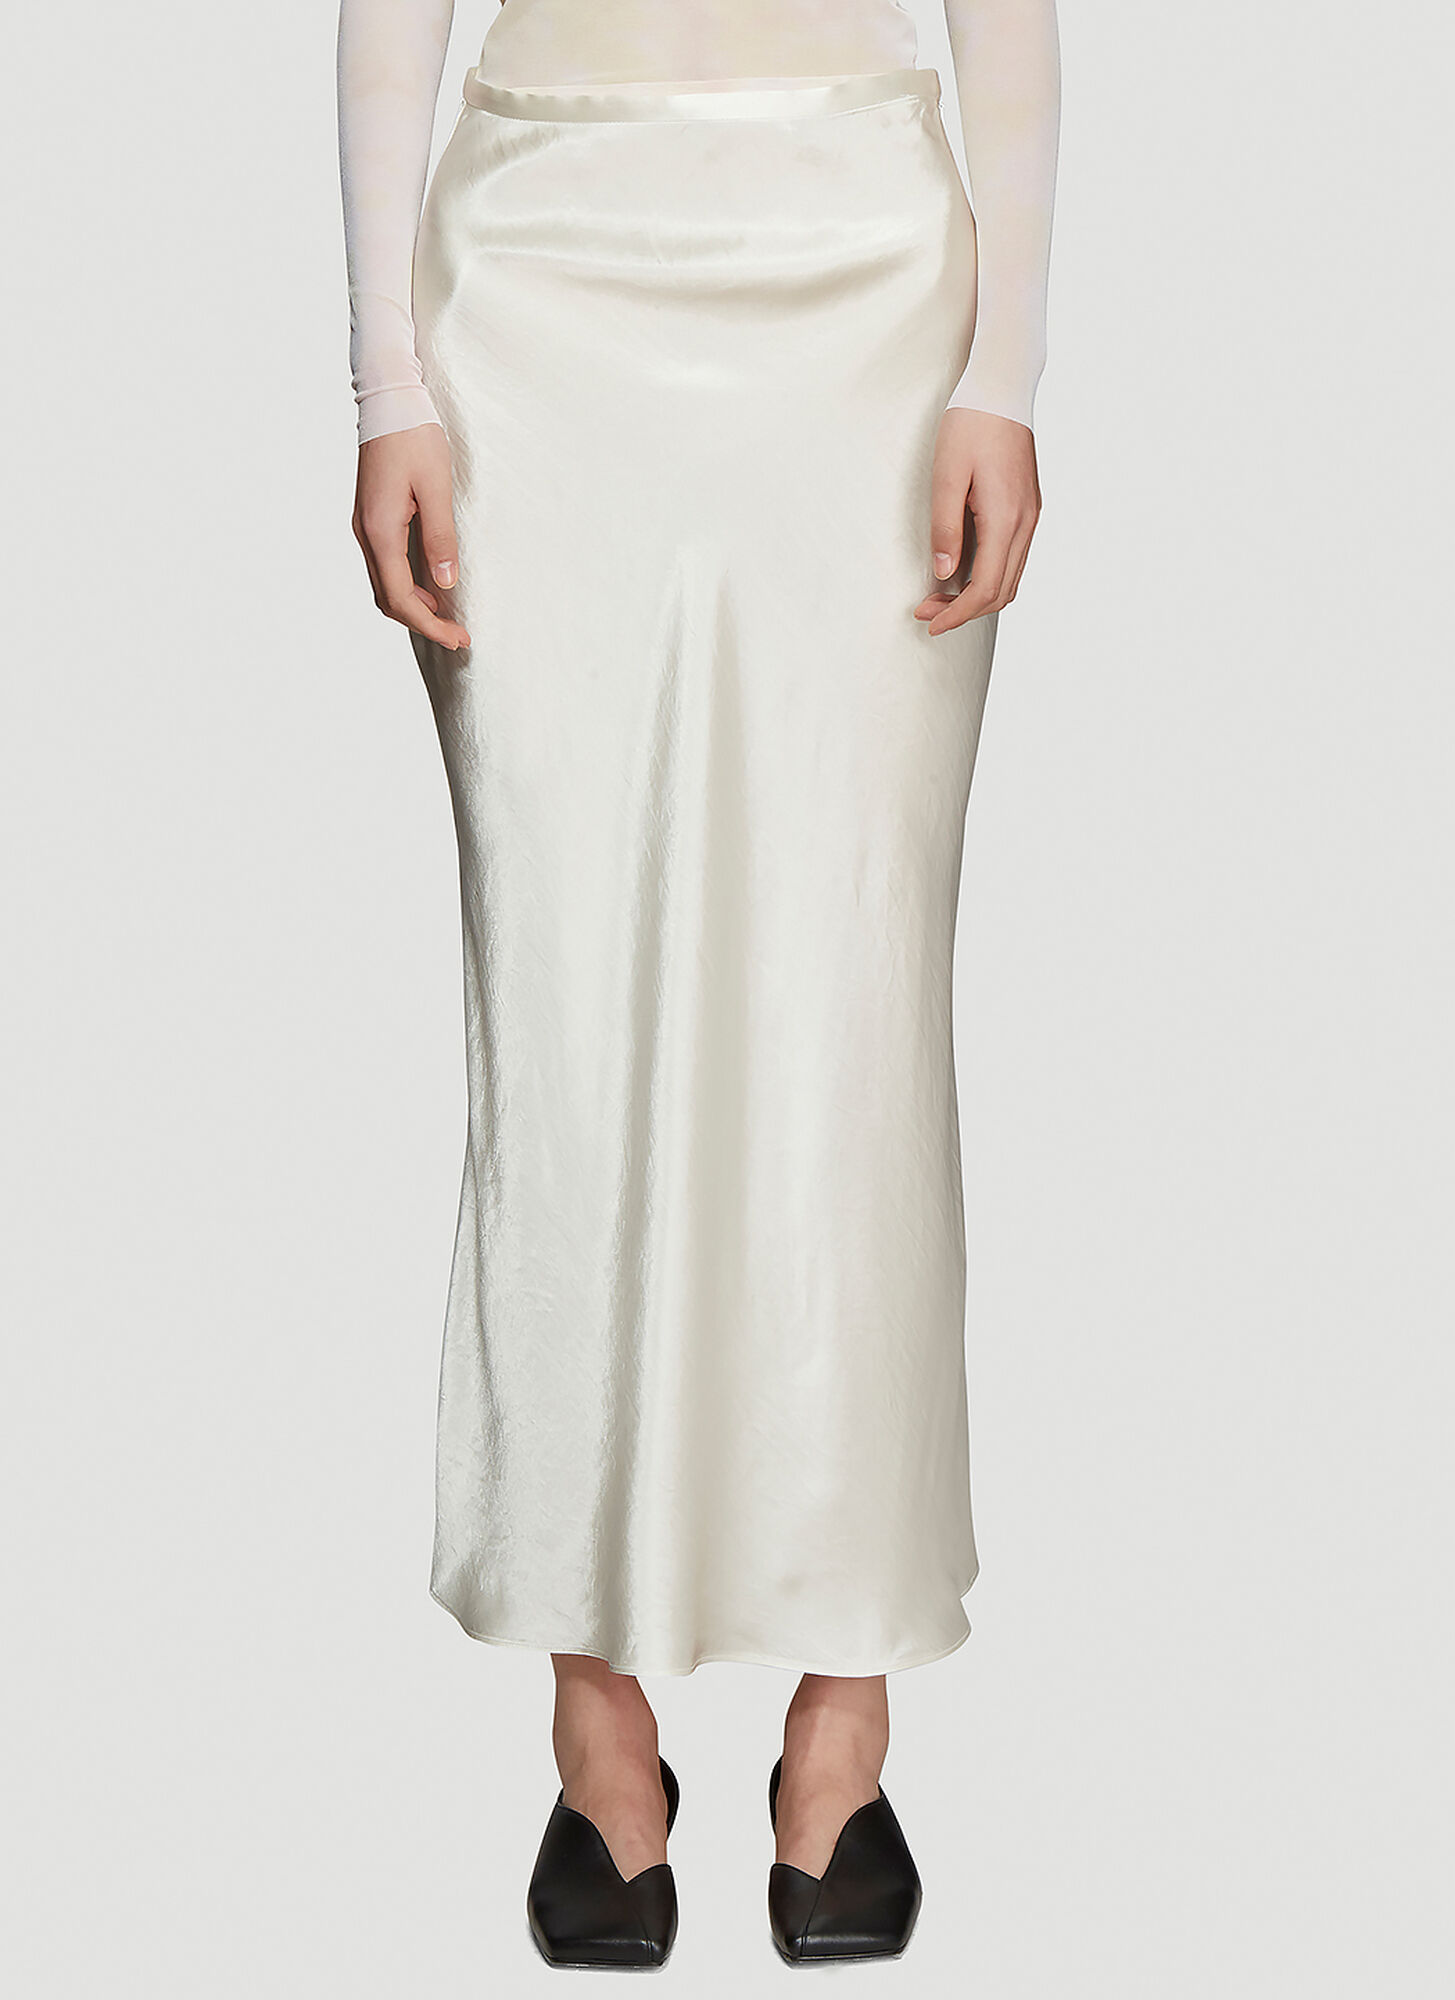 Collina Strada Yod Skirt in White